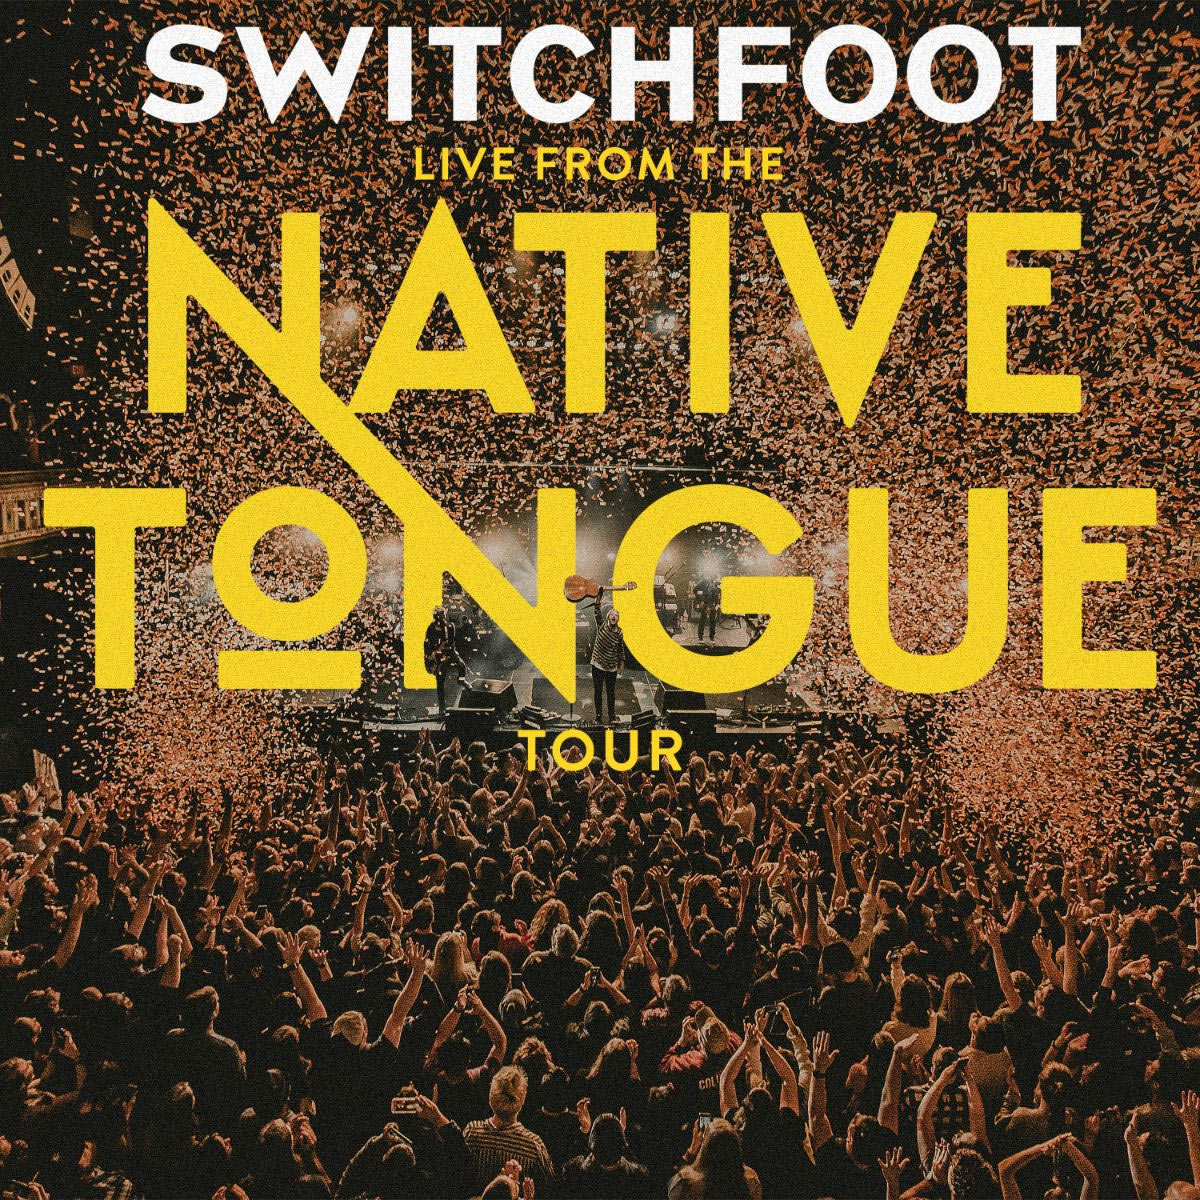 Jesusfreakhideoutcom Switchfoot Live From The NATIVE